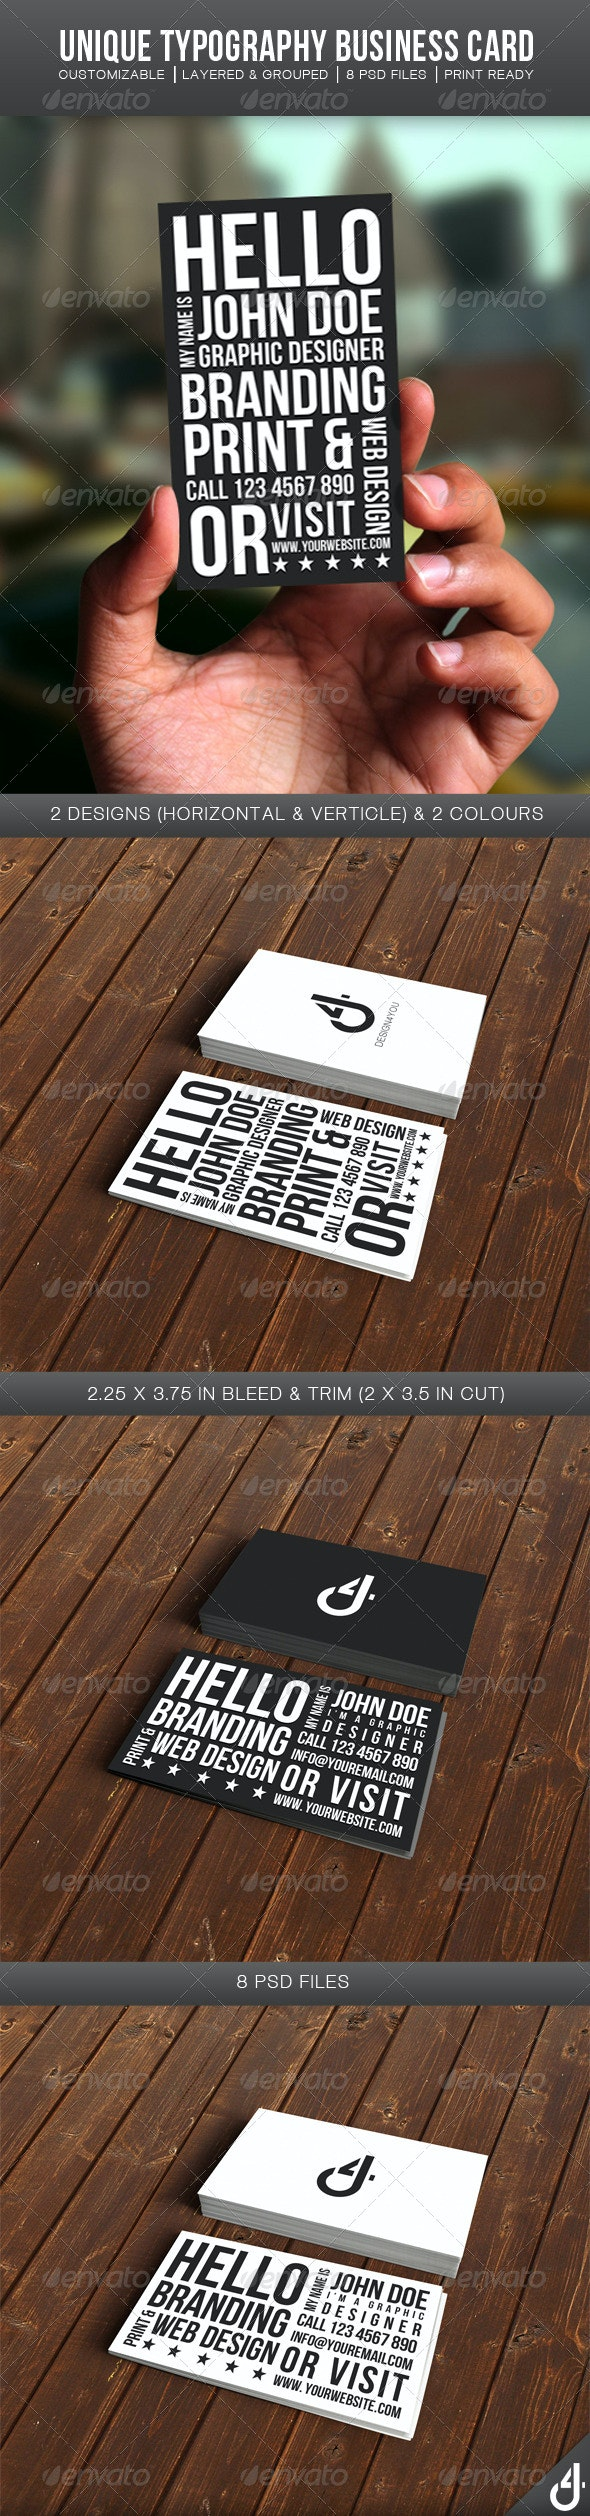 Unique Typography Business Card - Creative Business Cards